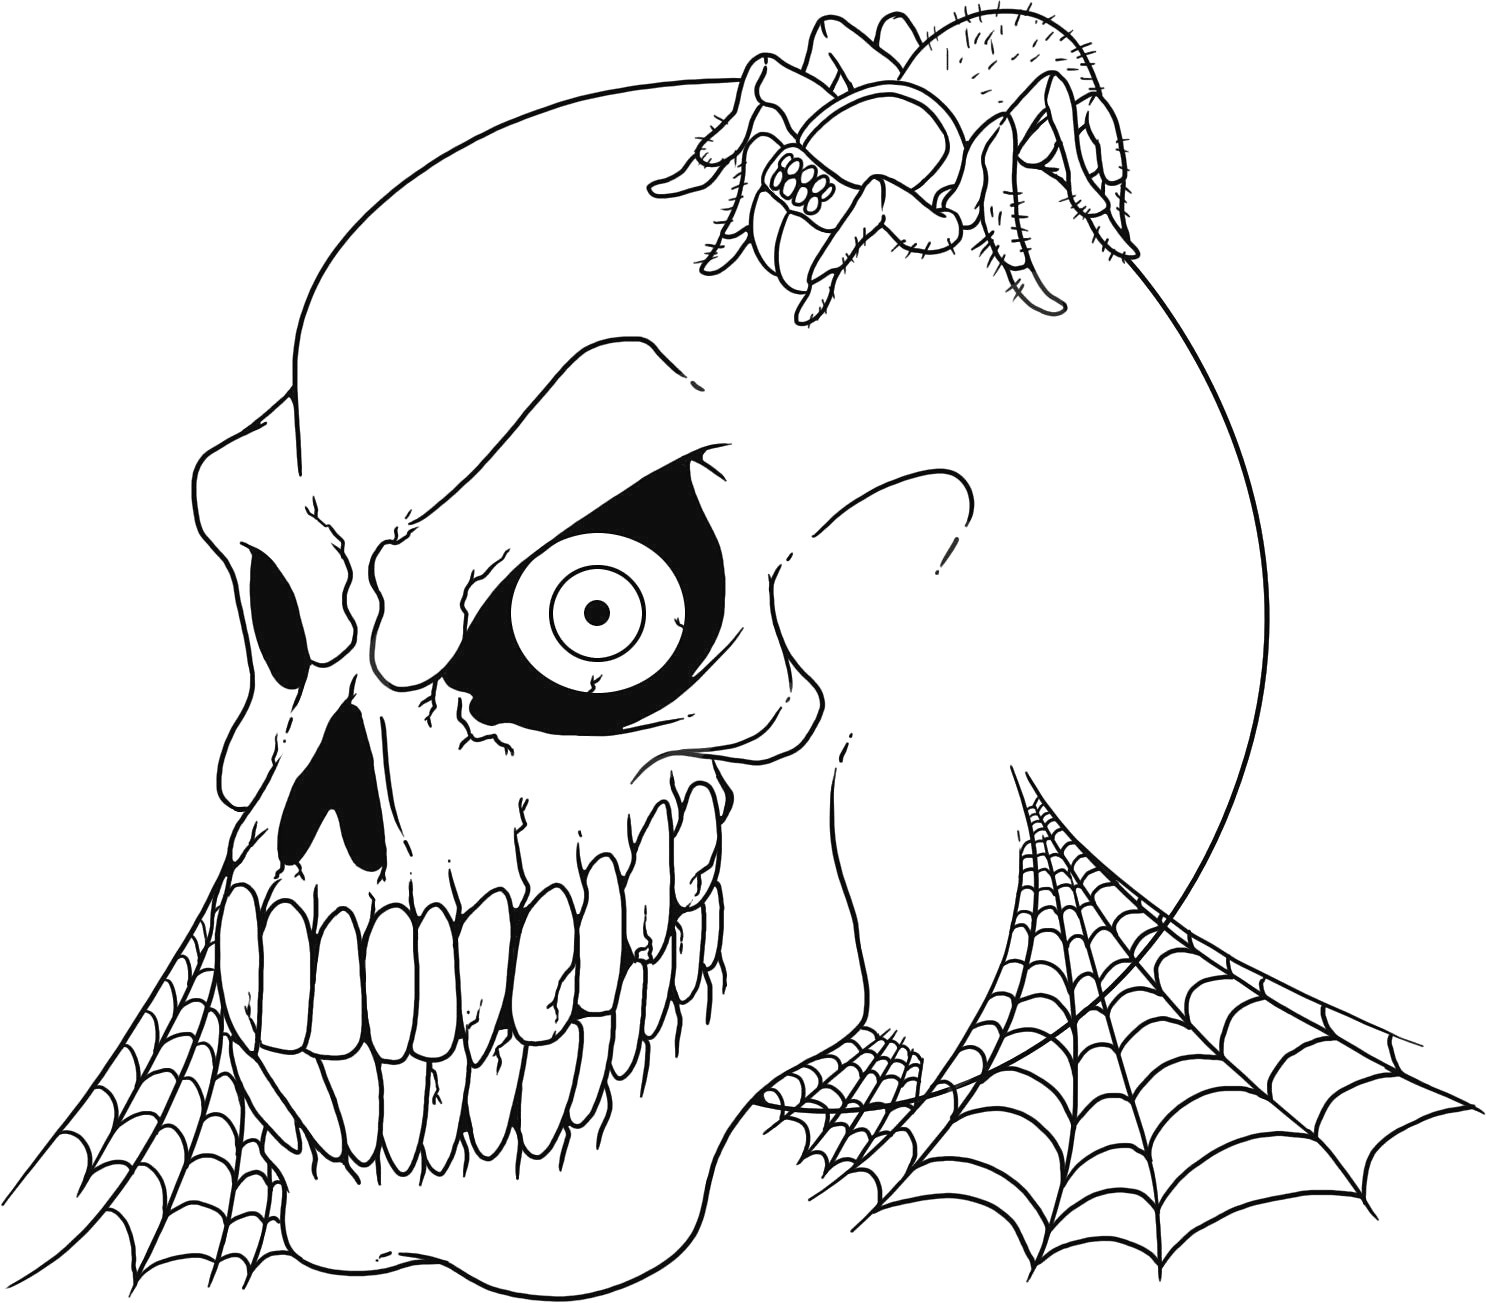 1486x1303 Spotlight Dry Bones Coloring Pages Strong Ezekiel Page Skeleto